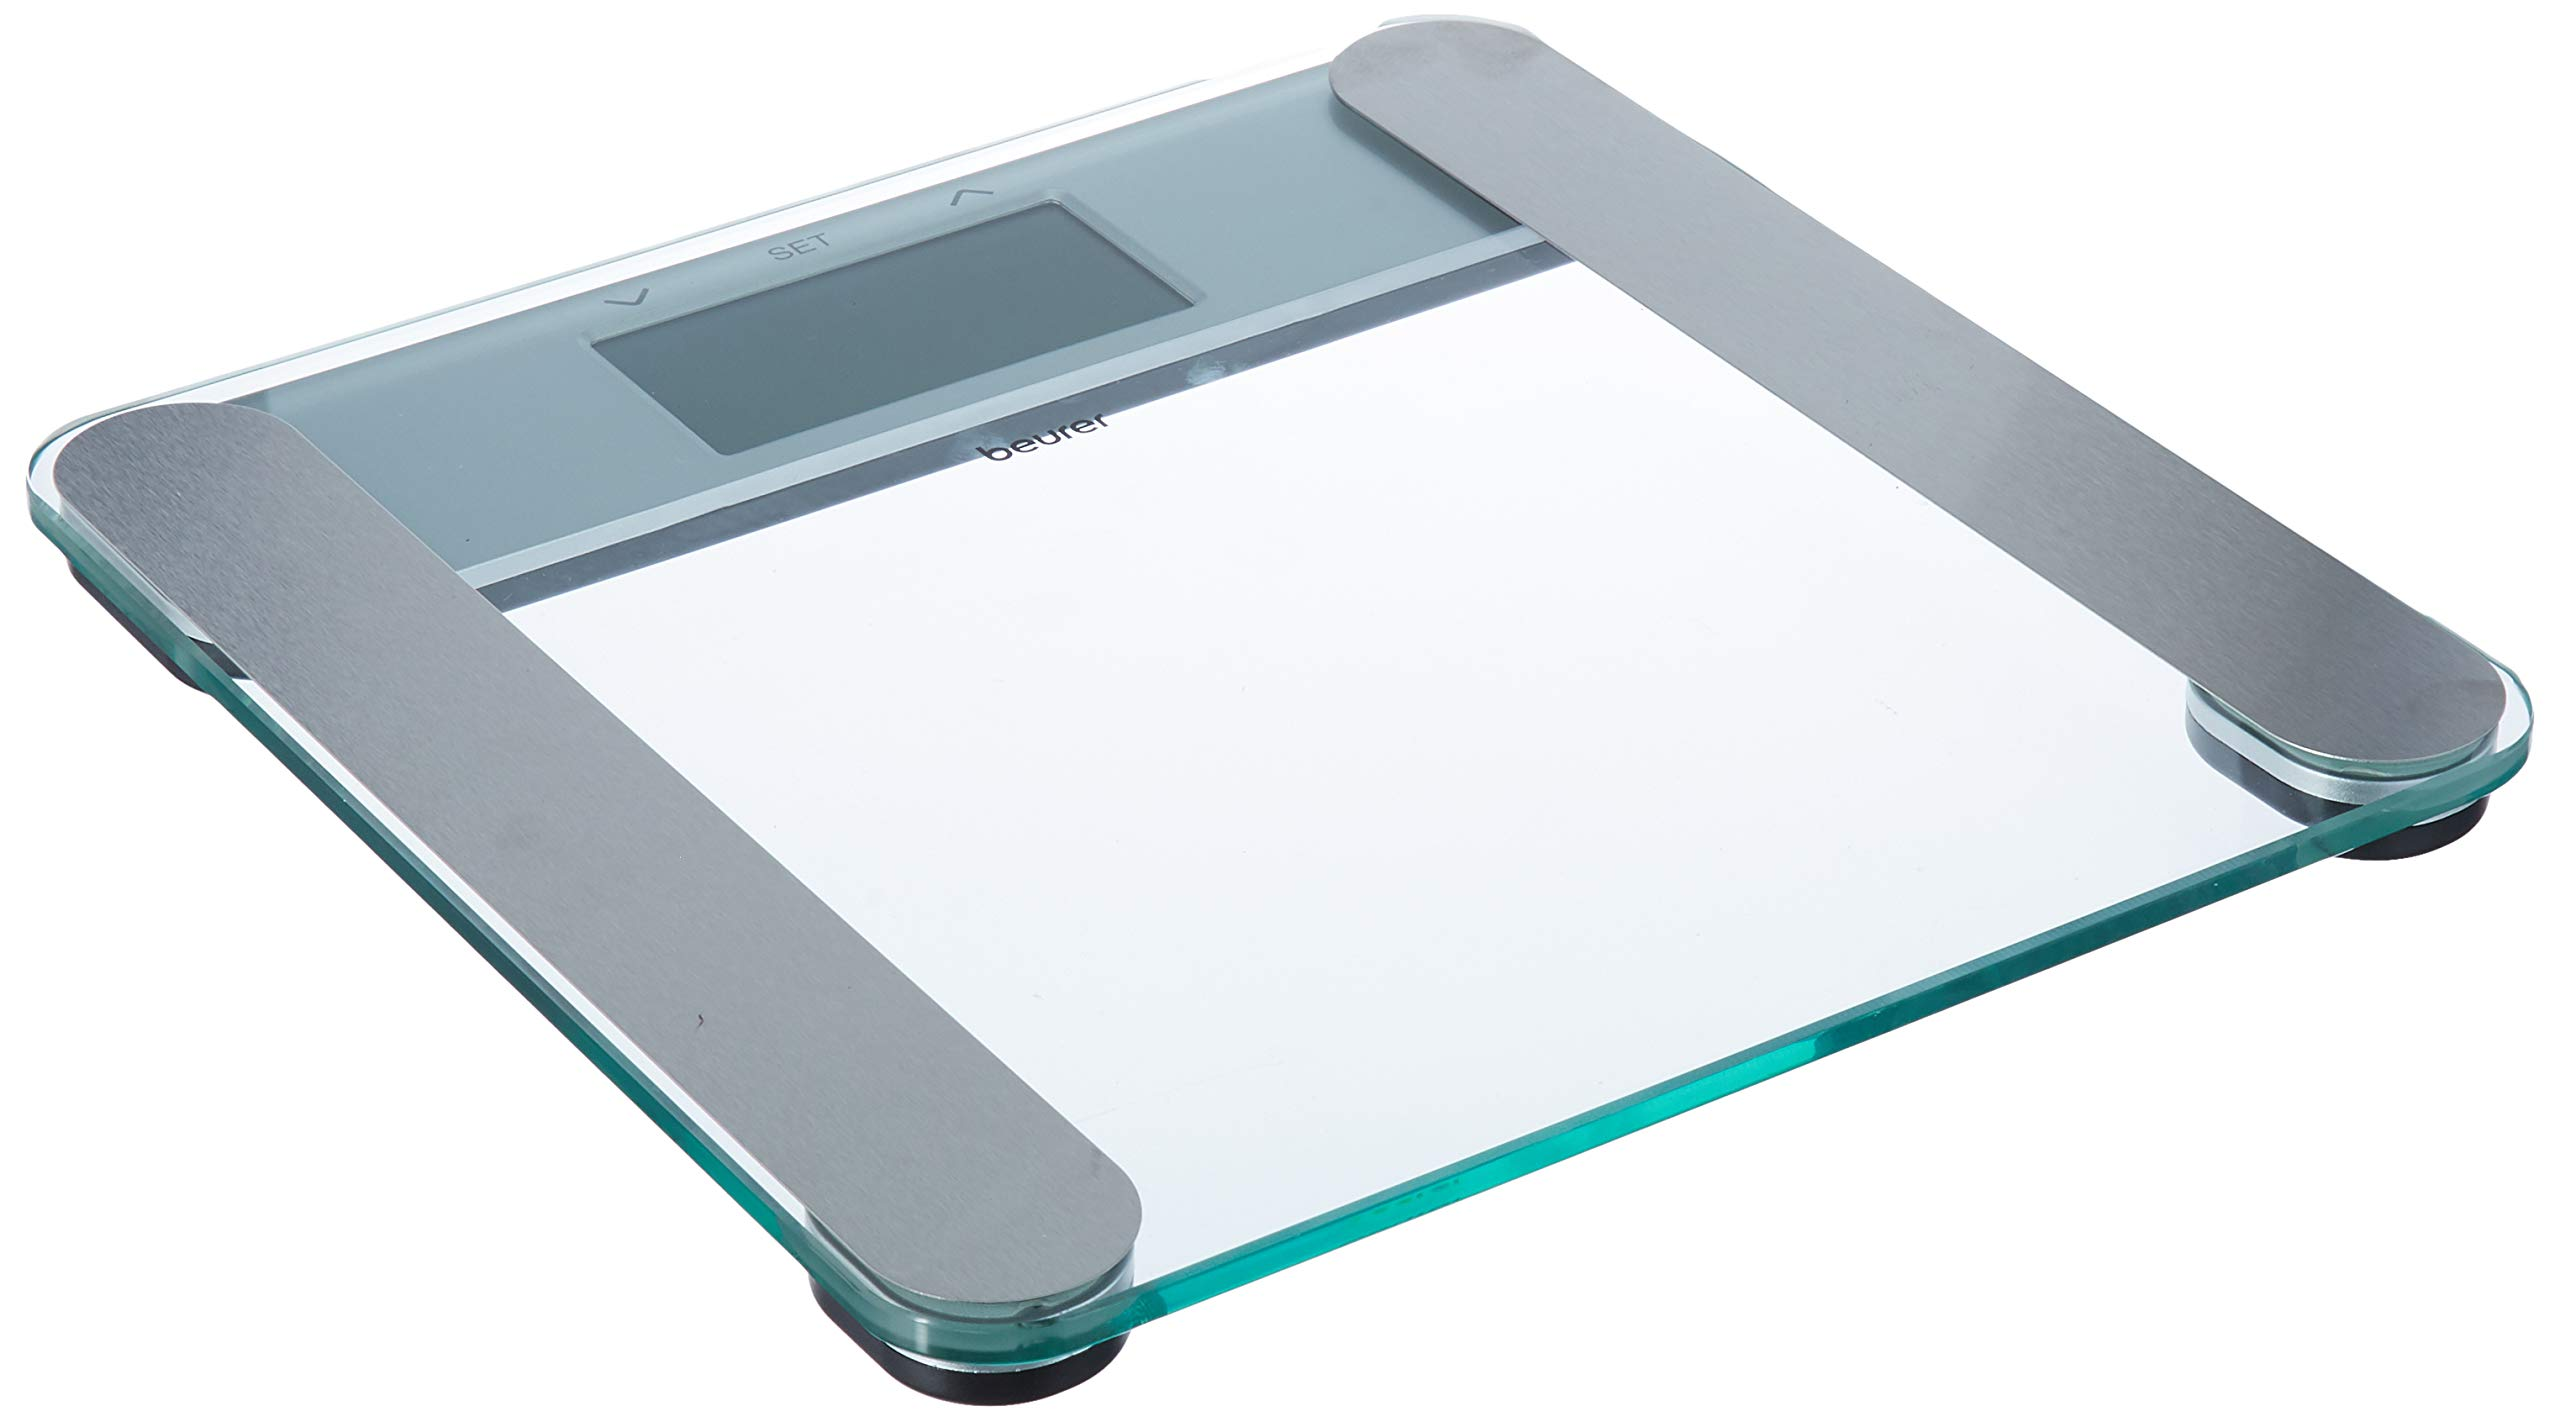 Beurer Body Fat Analyzer Scale BMI, Multi-User & Recognition, Digital Weight Scale, XL LCD Illuminated Display, BF221, Silver by Beurer